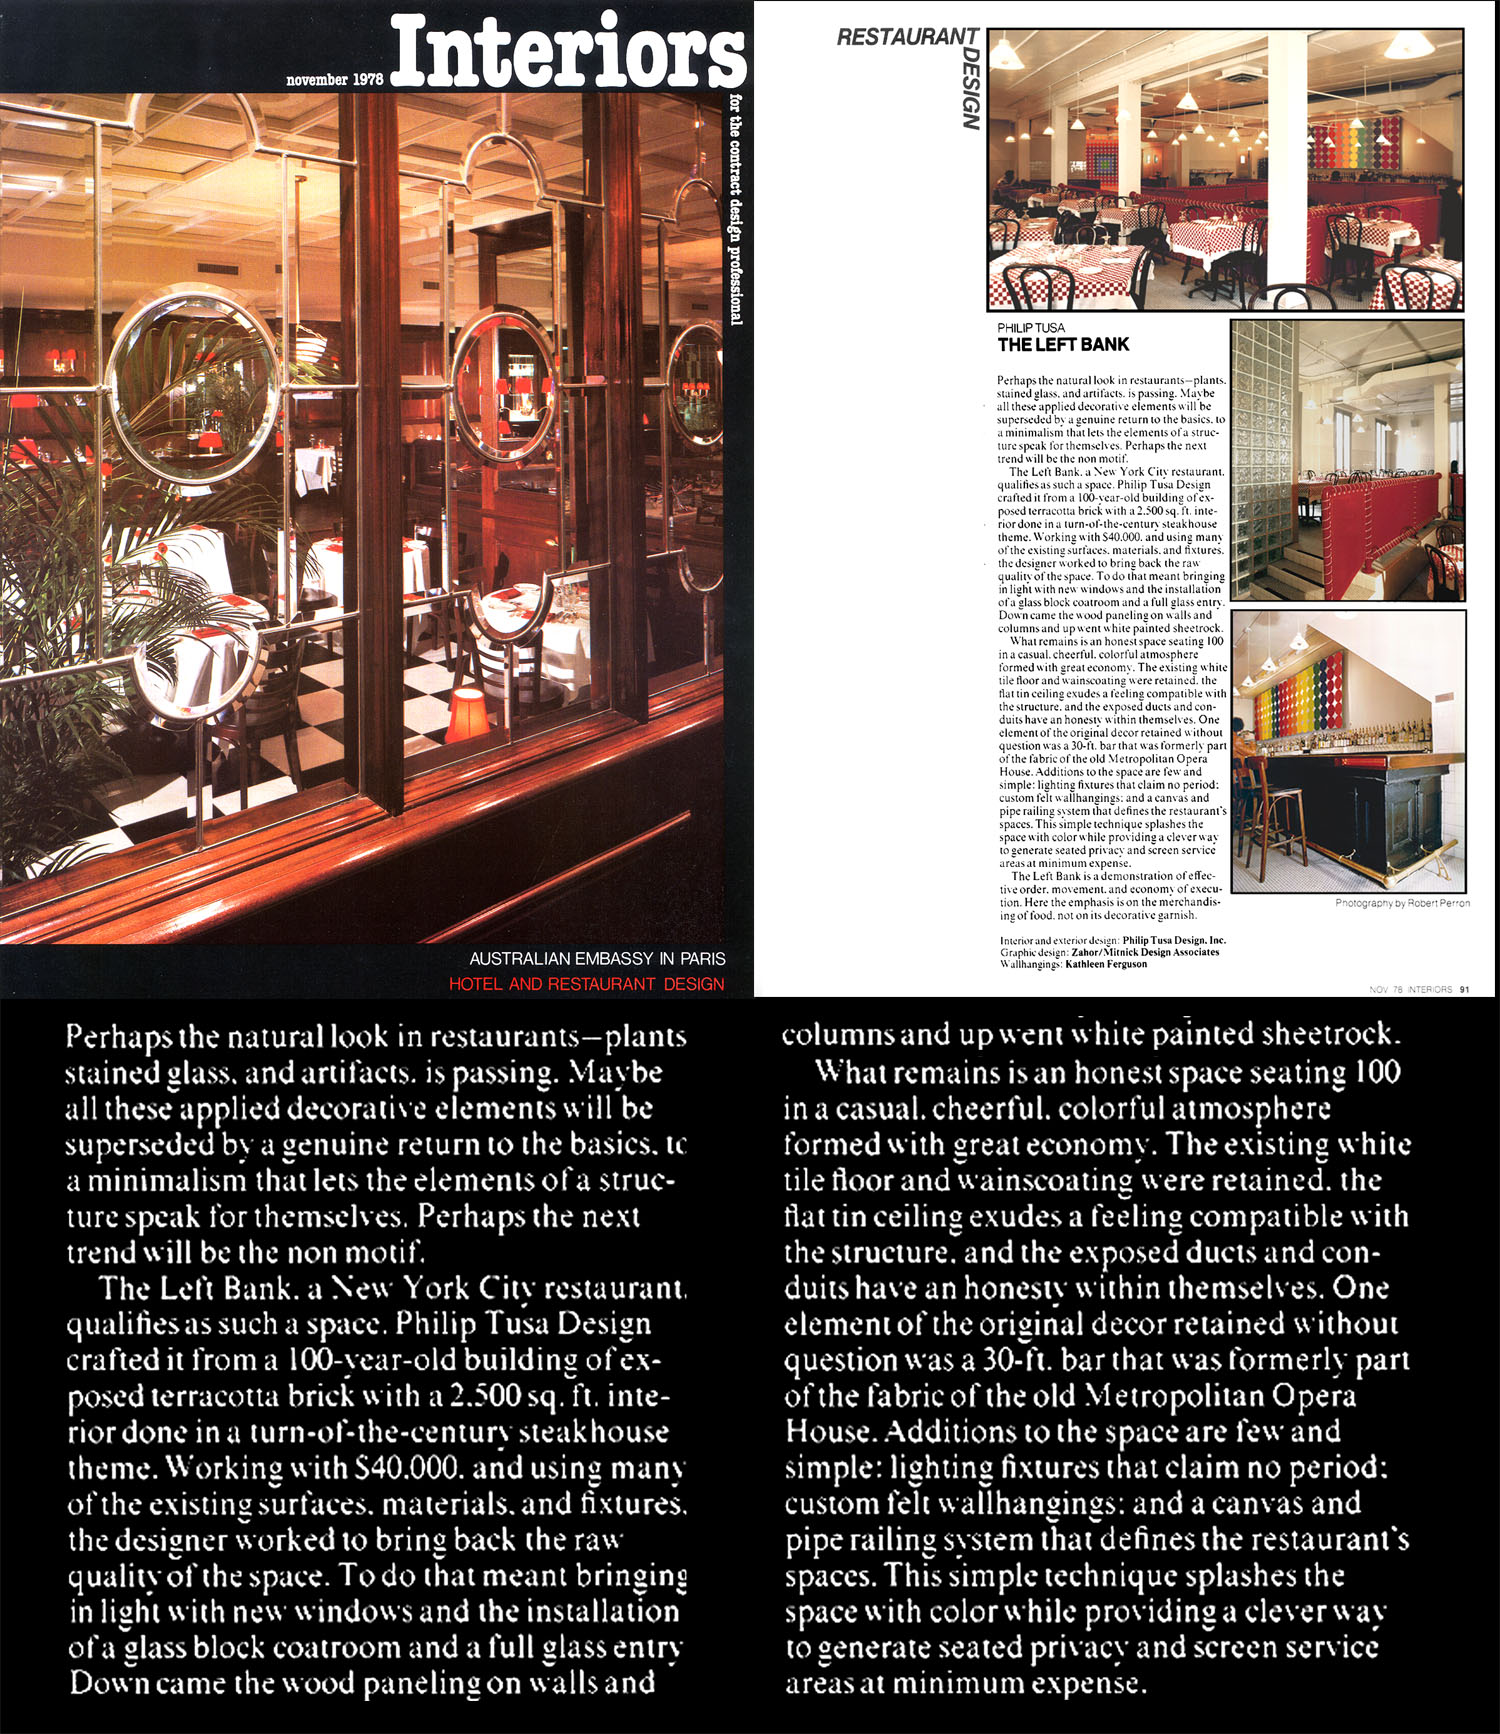 Interiors Article (11/78), page 91; The Left Bank Restaurant